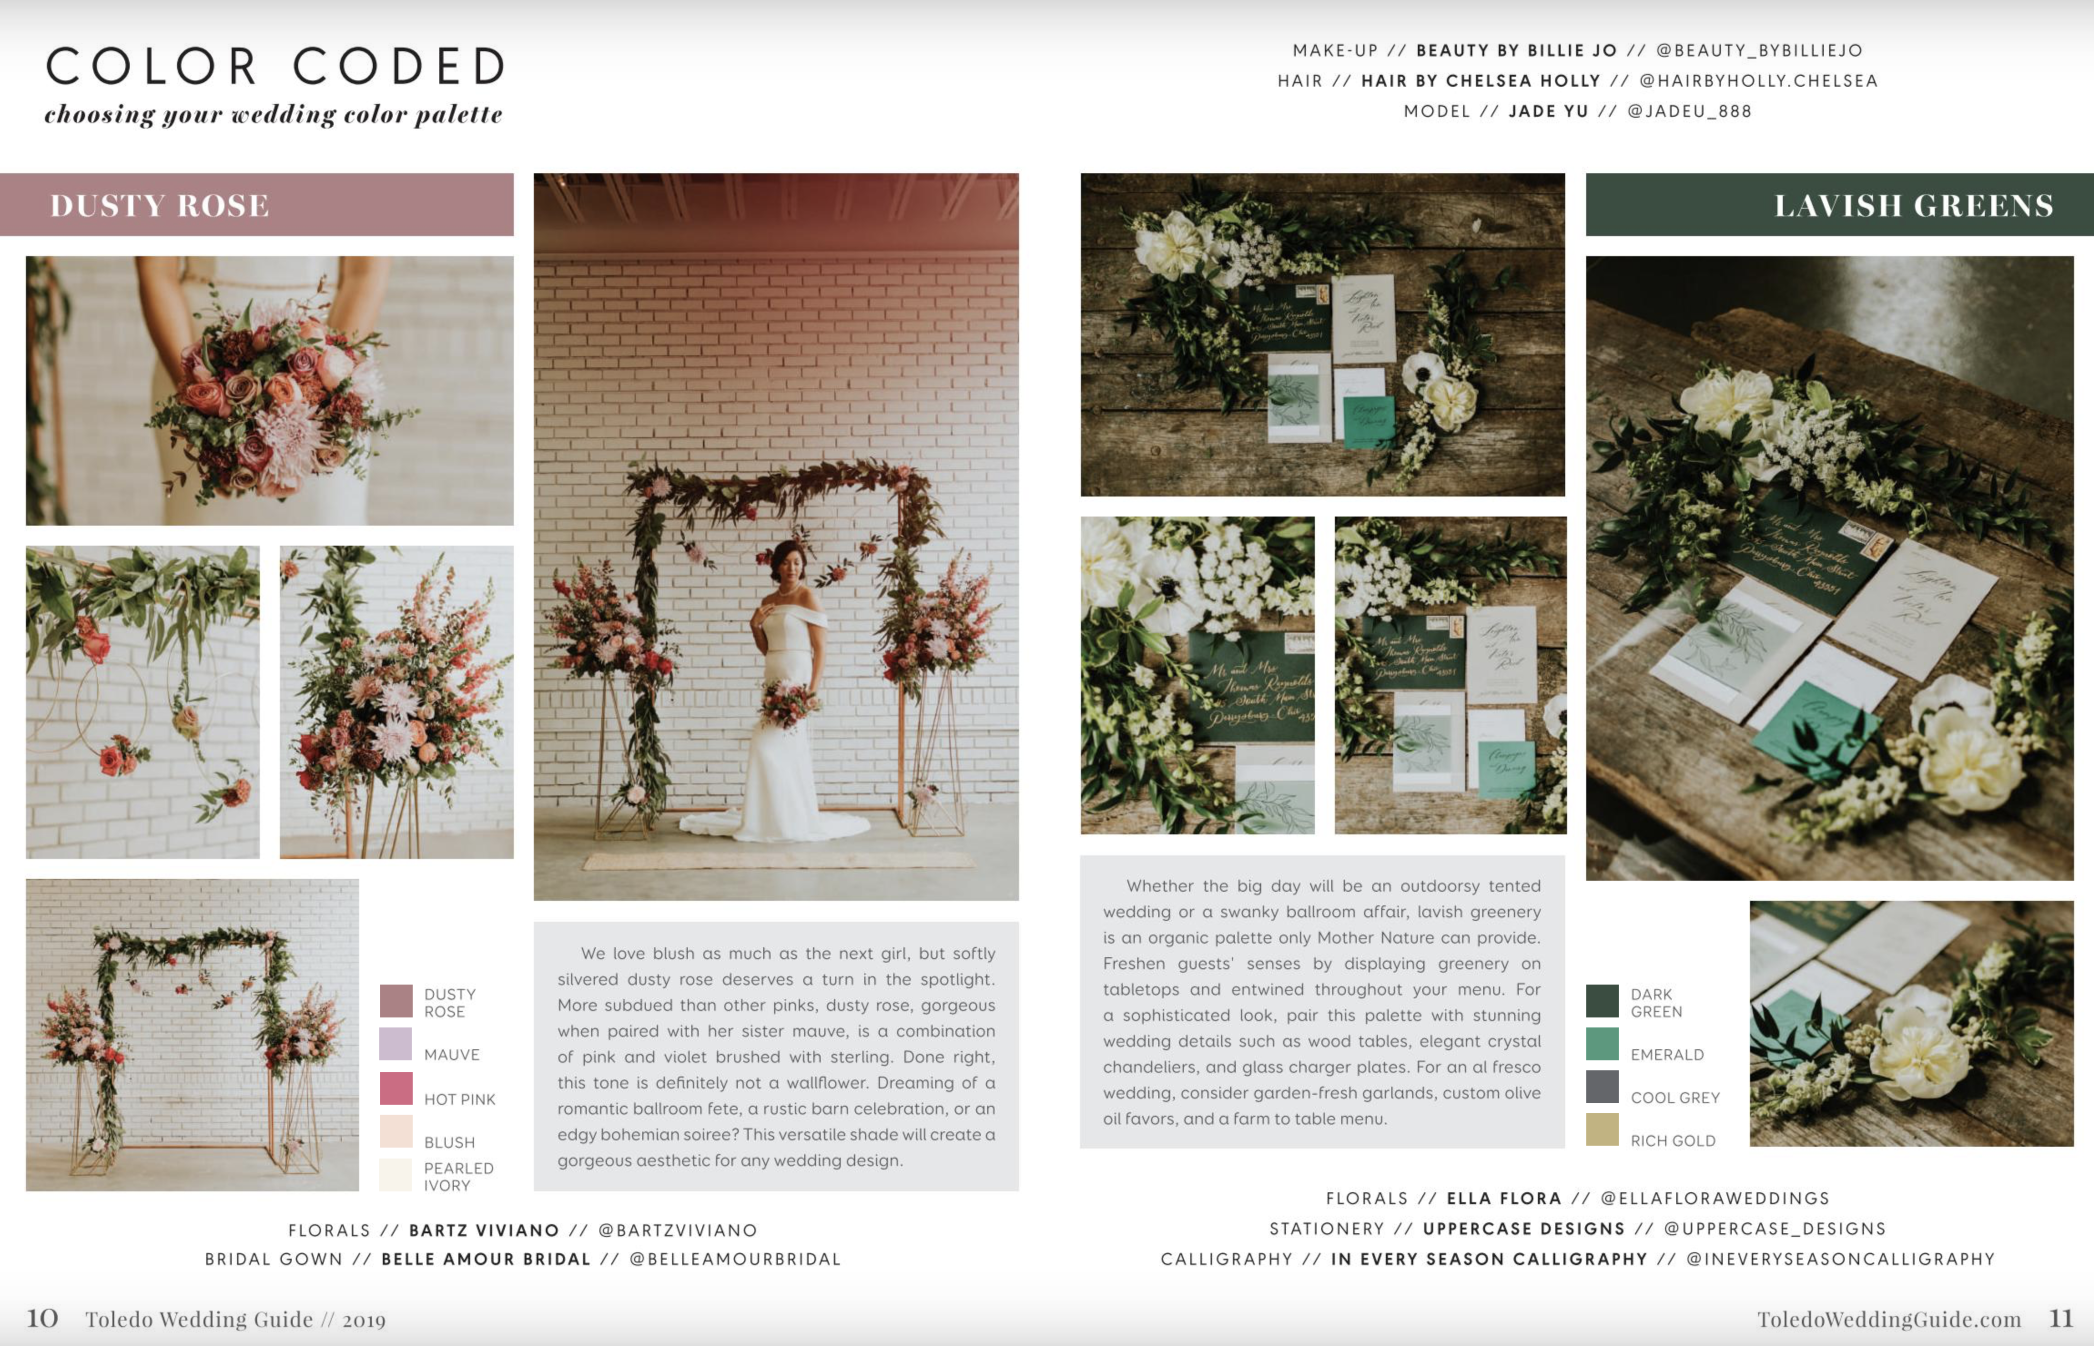 Toledo Wedding Guide - COLOR CODED - Choosing Your Wedding Color Palette by Event Prep Photographed by Adore Wedding Photography